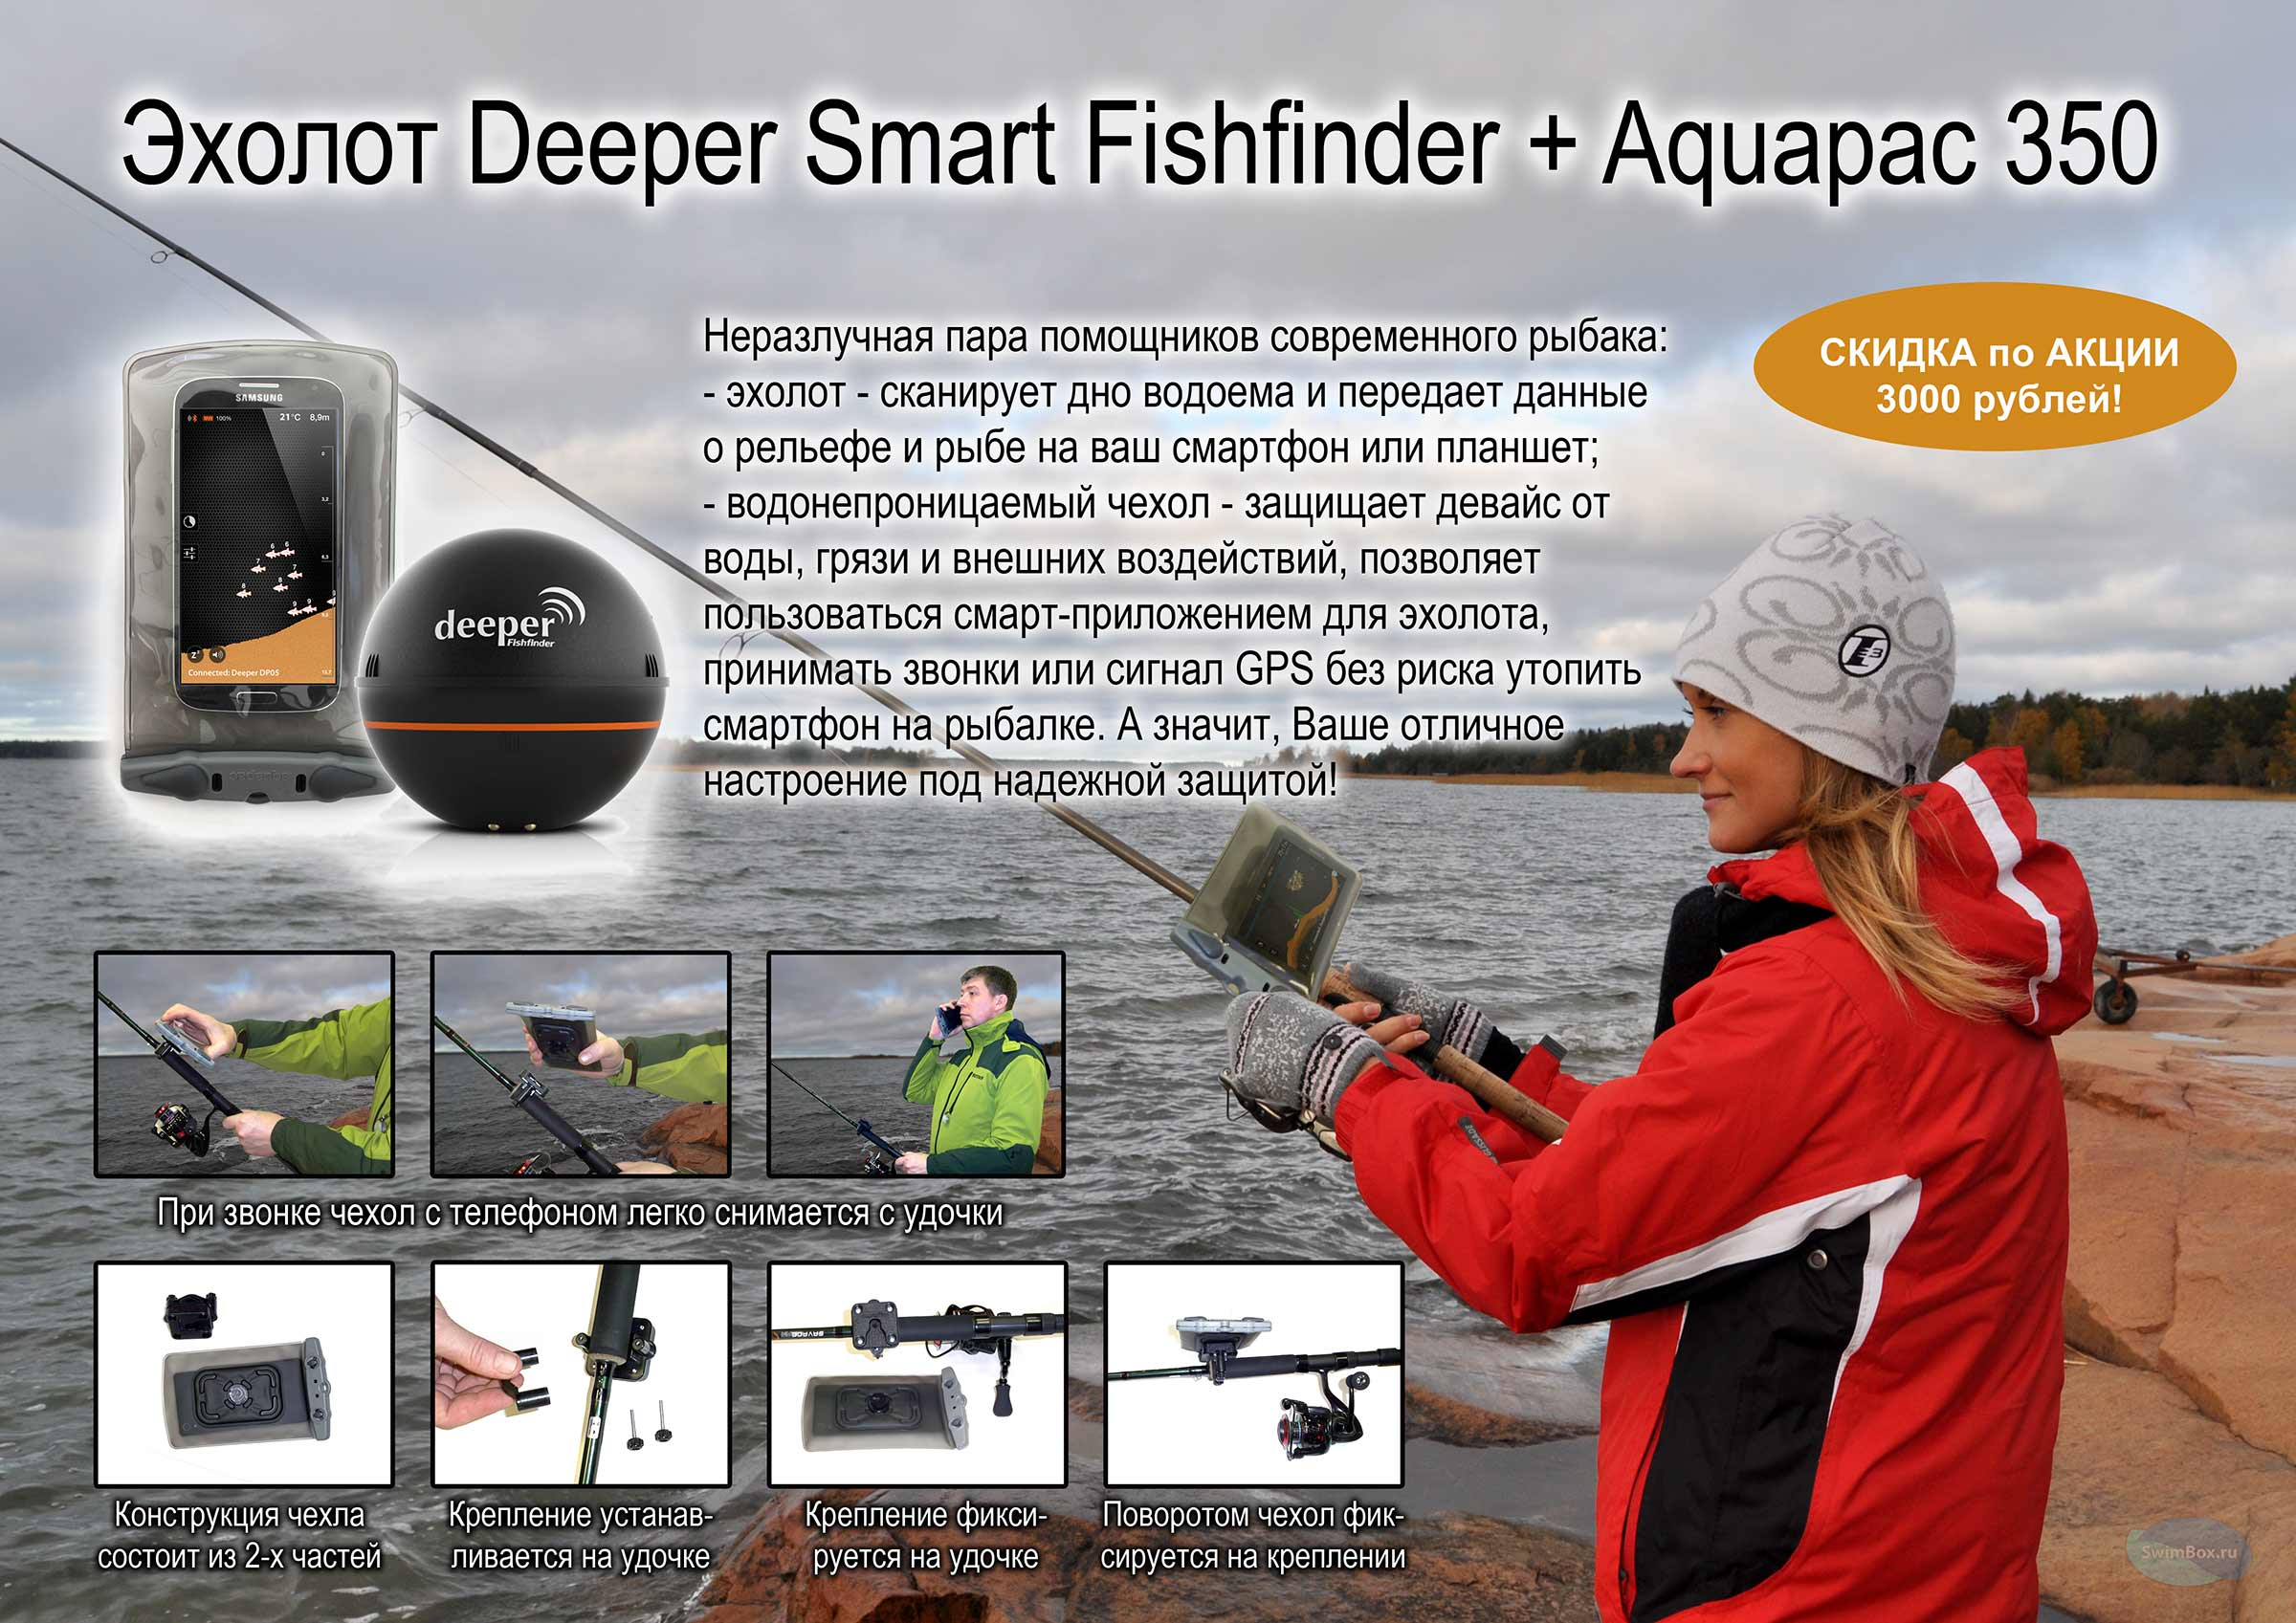 Эхолот Deeper Smart Fishfinder + Aquapac 350